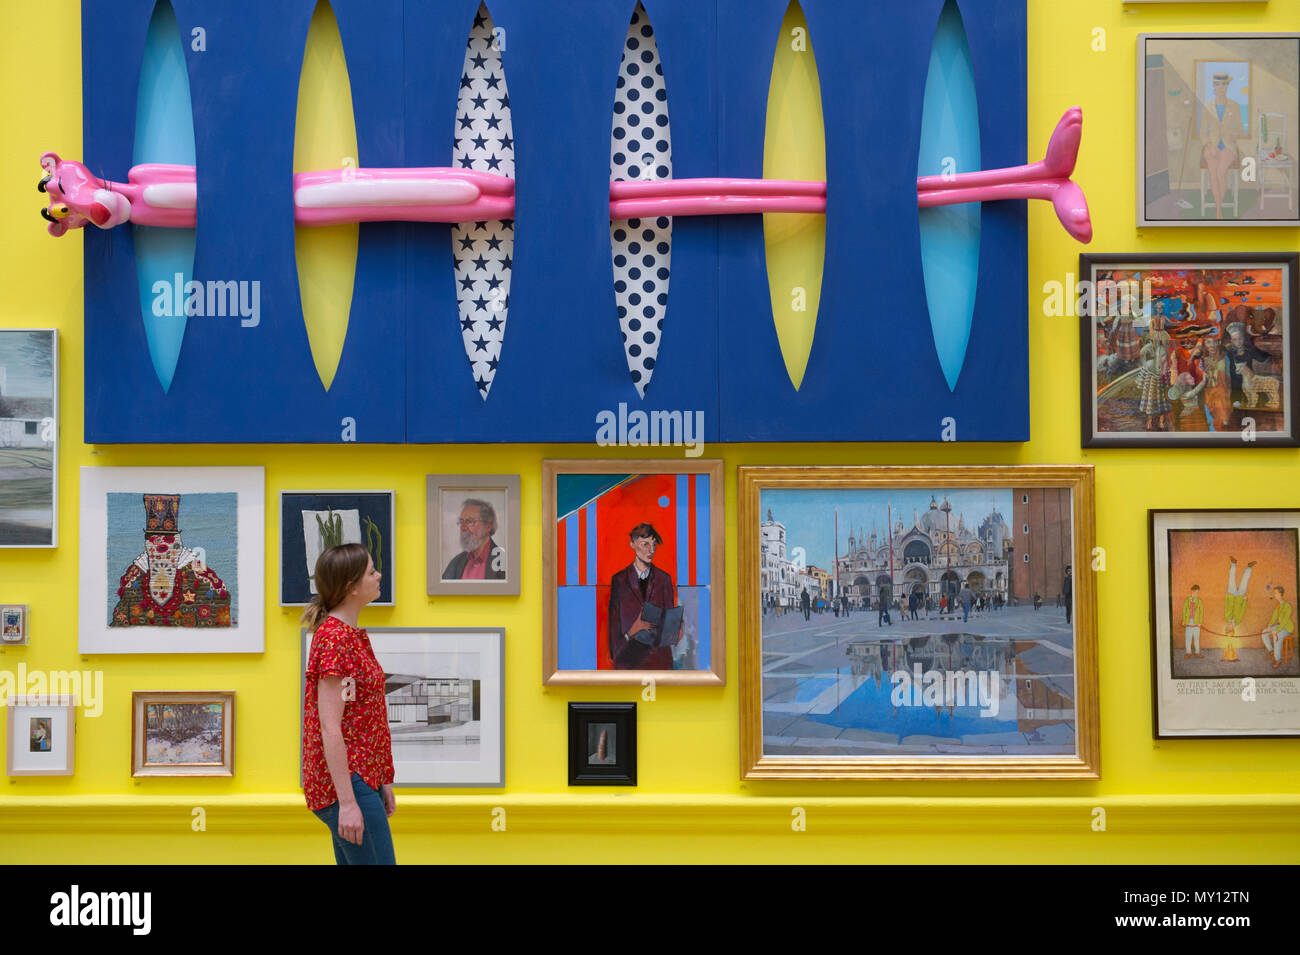 Burlington House, London, UK. 5 June, 2018. The Royal Academy's annual Summer Exhibition celebrates its 250th anniversary. To mark this momentous occasion, the exhibition is co-ordinated by Grayson Perry RA, who, with his committee of fellow artists have handpicked over 1,300 artworks in an array of mediums. Photo: Infinity, Olga Lomaka, £58,500. Credit: Malcolm Park editorial/Alamy Live News - Stock Image